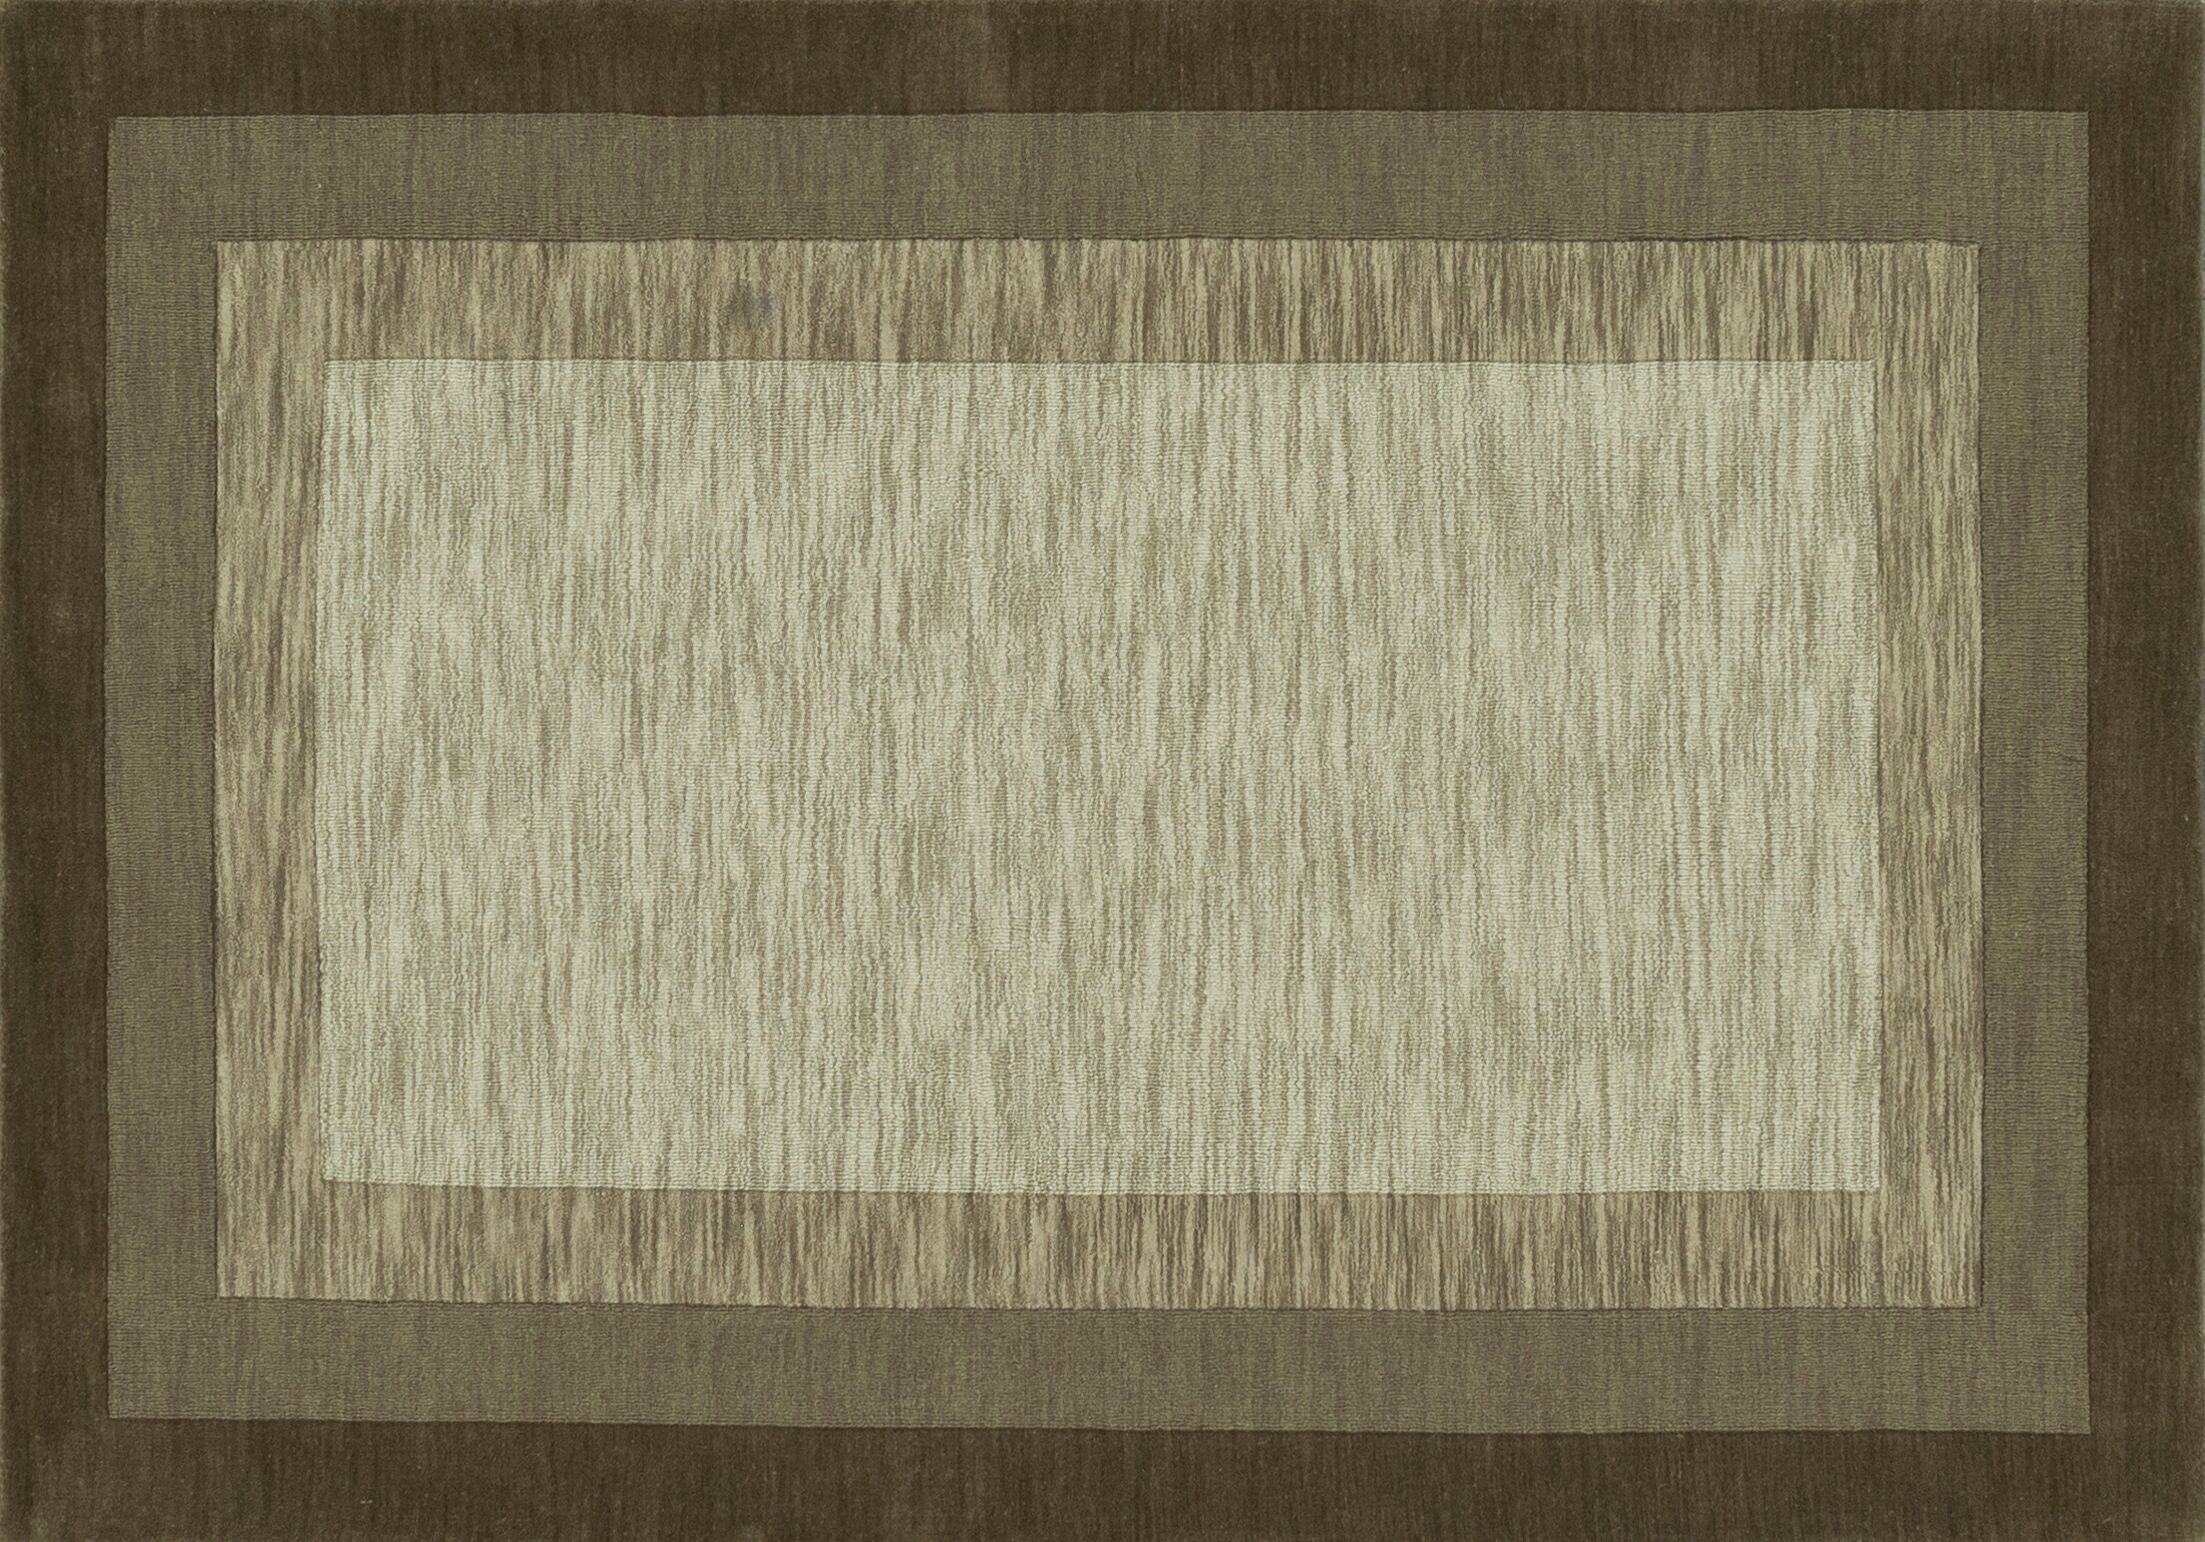 Keifer Hand-Tufted Brown/Tan Area Rug Rug Size: Rectangle 9'3